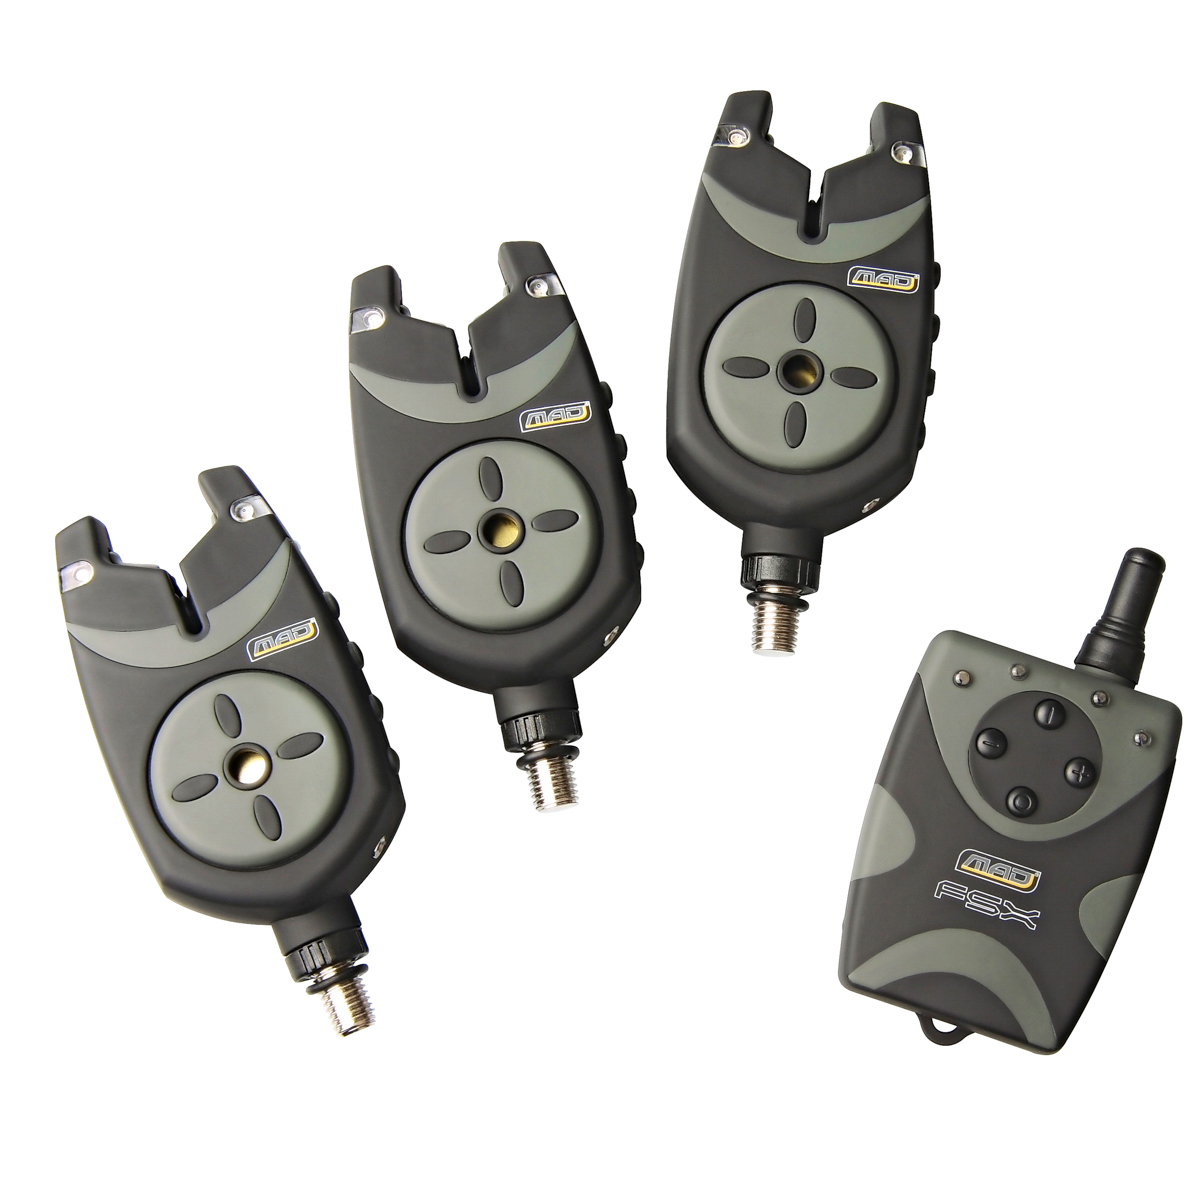 MAD DSX G2 Bite Alarms 3+ 1